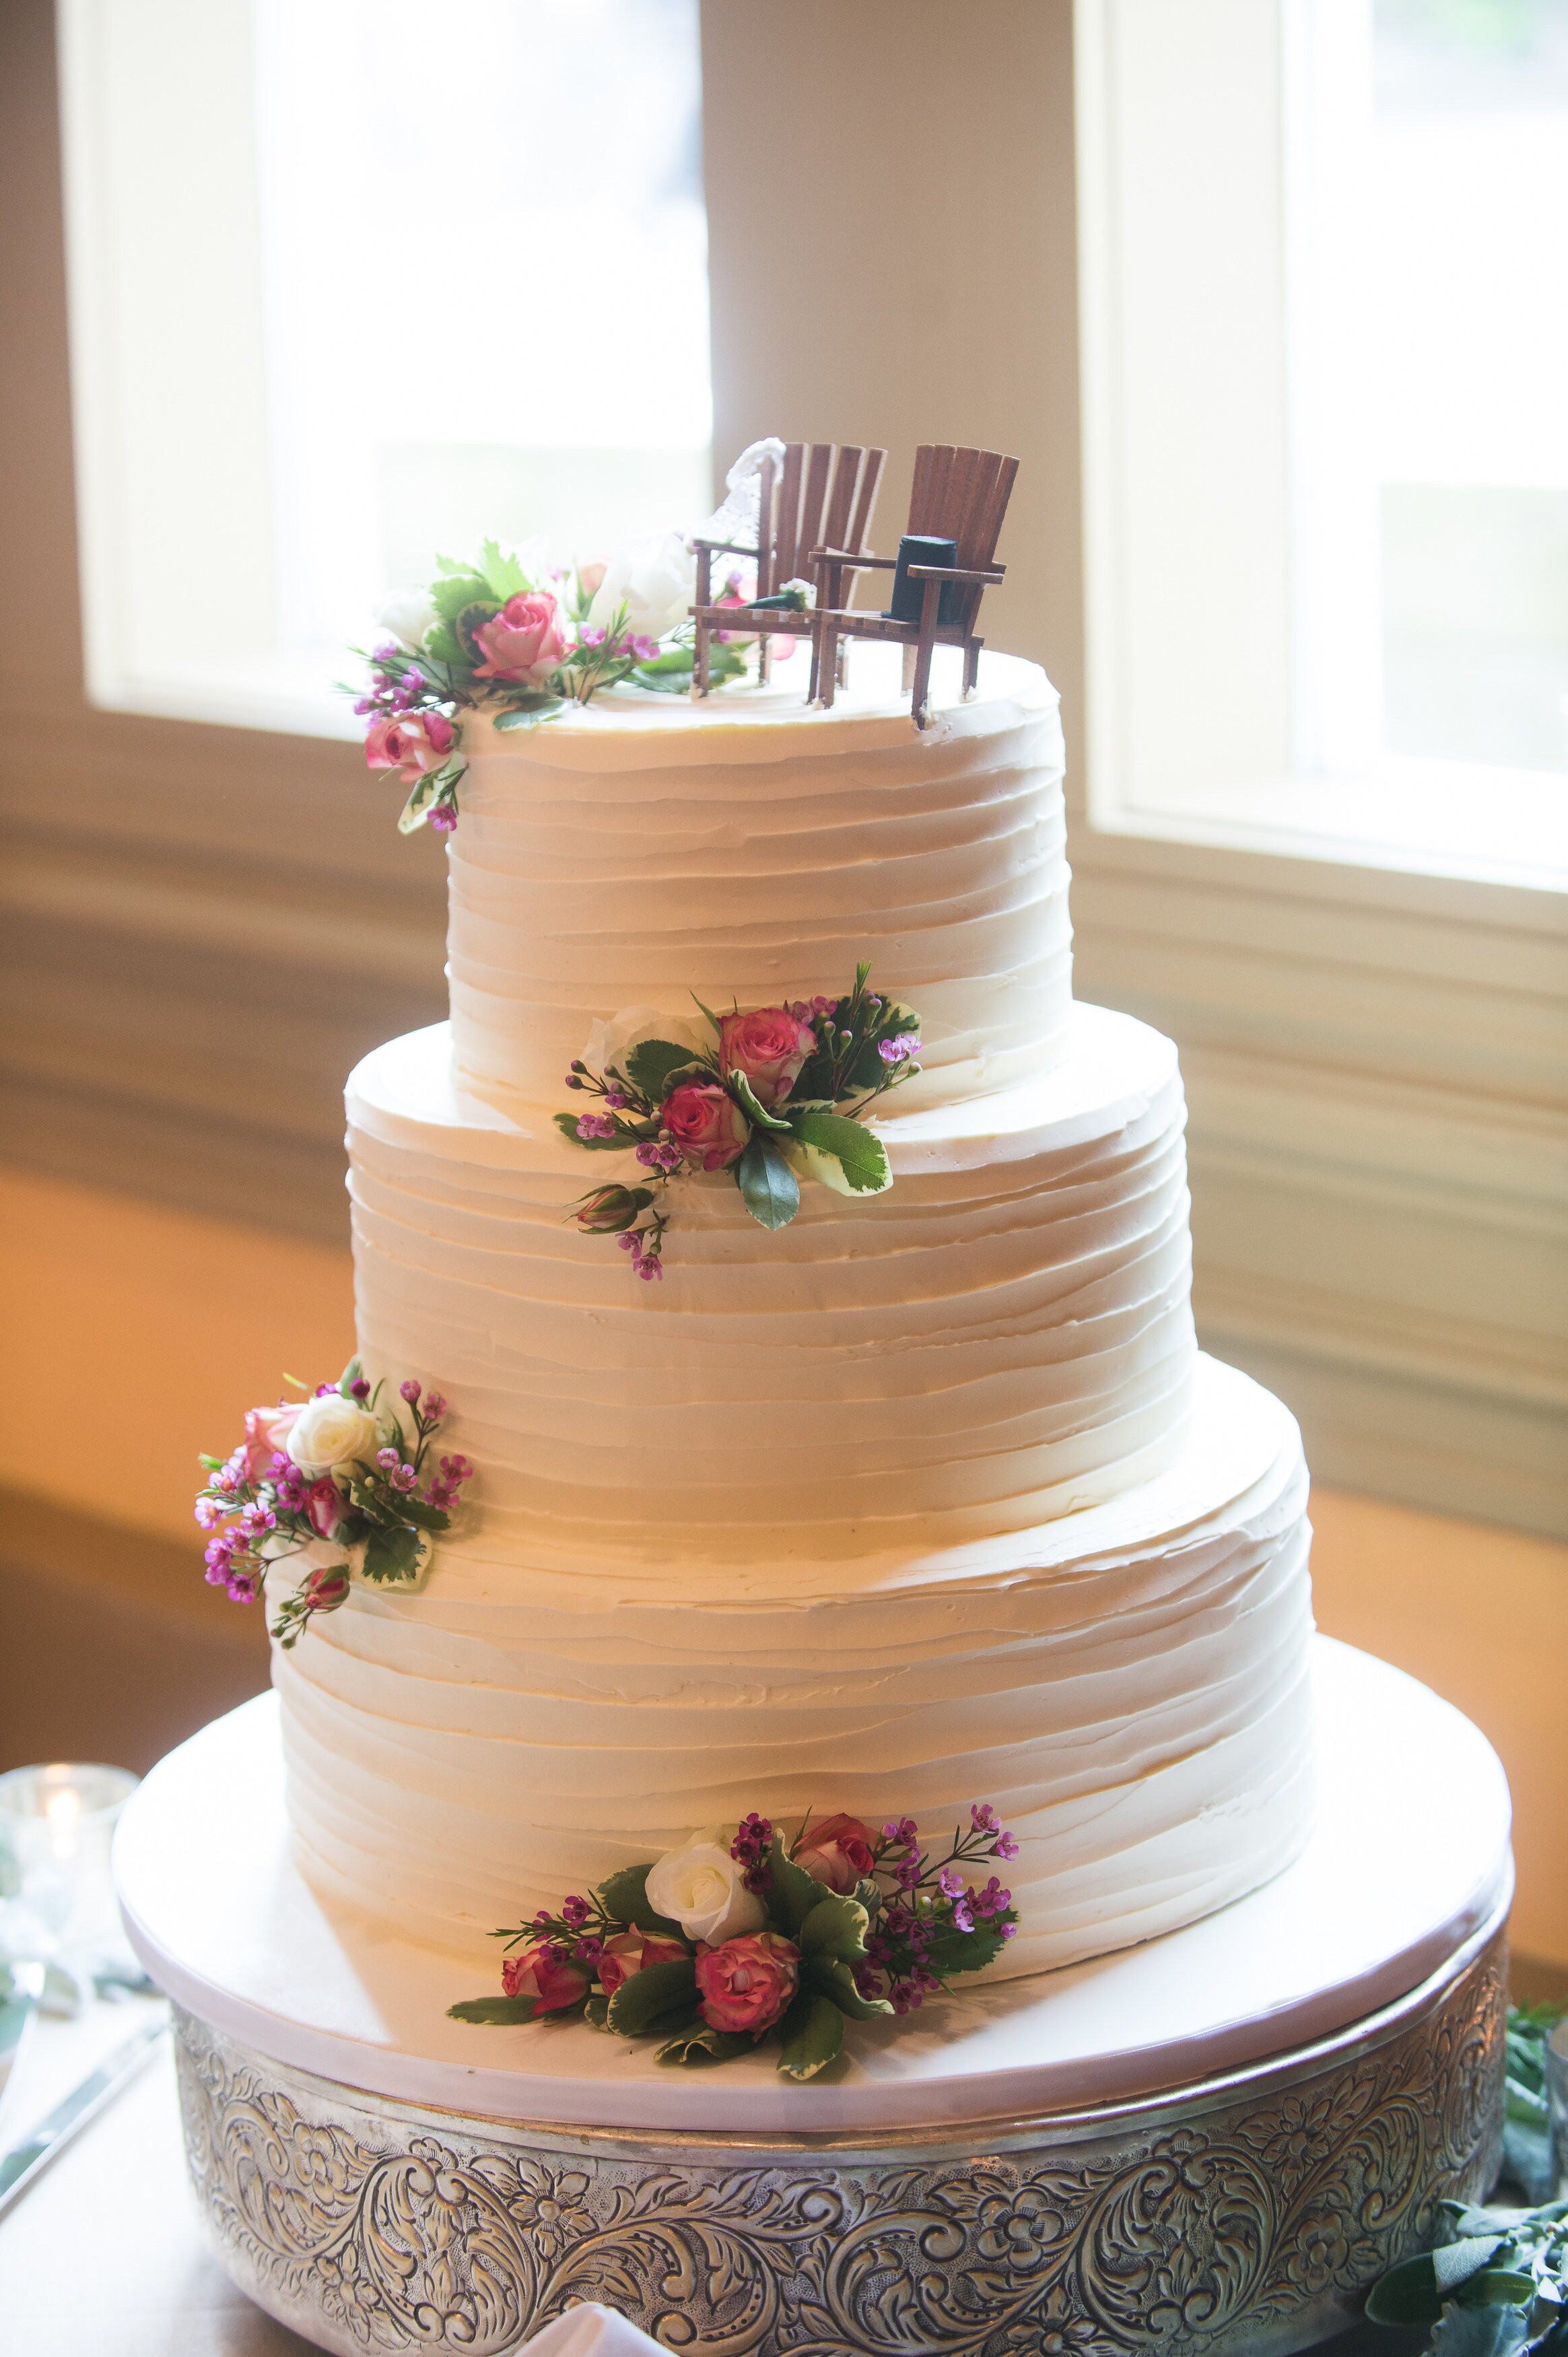 Wedding Cakes Styles  The 15 mon Cake Designs Names So You Know What to Ask For